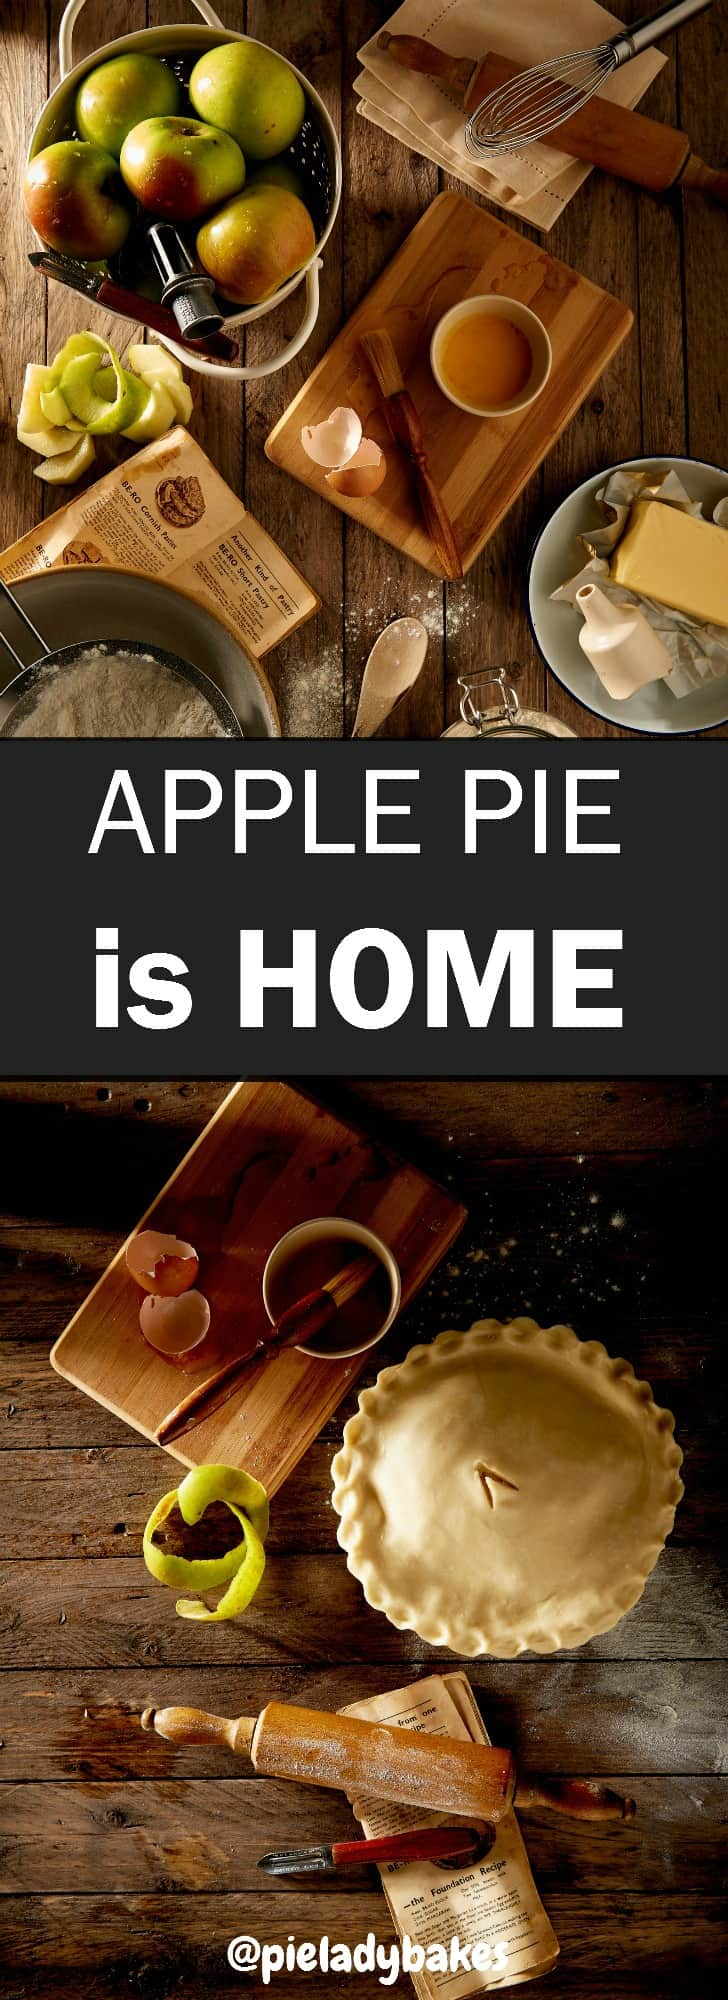 "My mom used to say ""apple pie without cheese, is like a kiss without a squeeze"". I loved to hear her say that more than anything! Fall is just around the corner and that's means apple picking season is too! You won't believe how easy it is to make this pie! Just thinking about the amazing aromas from an apple pie baking in my kitchen evokes strong memories of cozy family suppers,and the comforts of home."